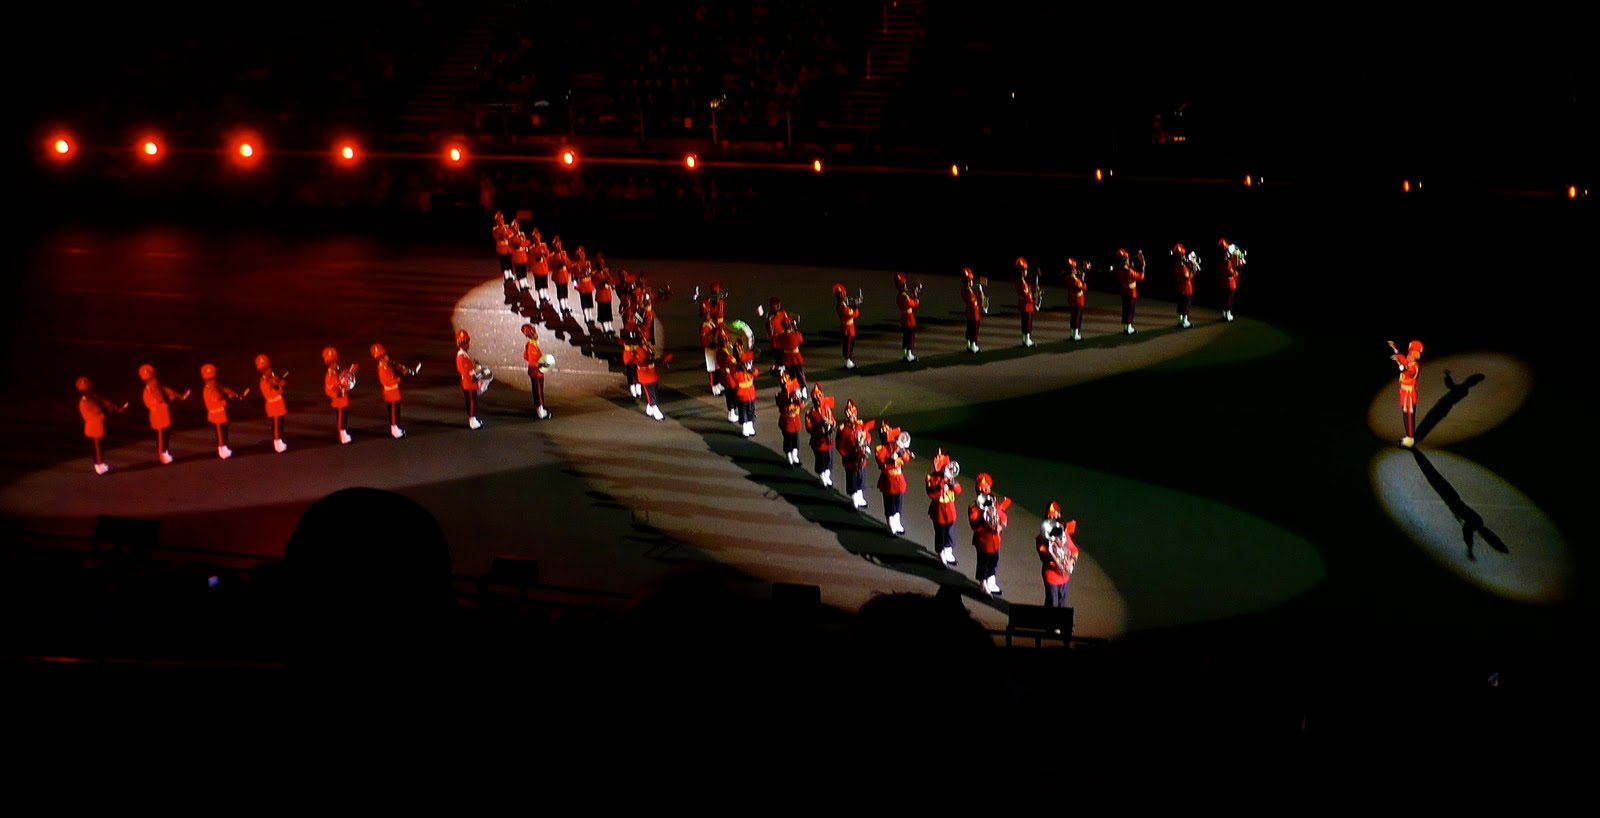 http://1.bp.blogspot.com/-JD2nNfS65dc/TeHjlXLj7MI/AAAAAAAAA9U/_86riJD6u9Y/s1600/Indian_Army_marching_band-2.jpg